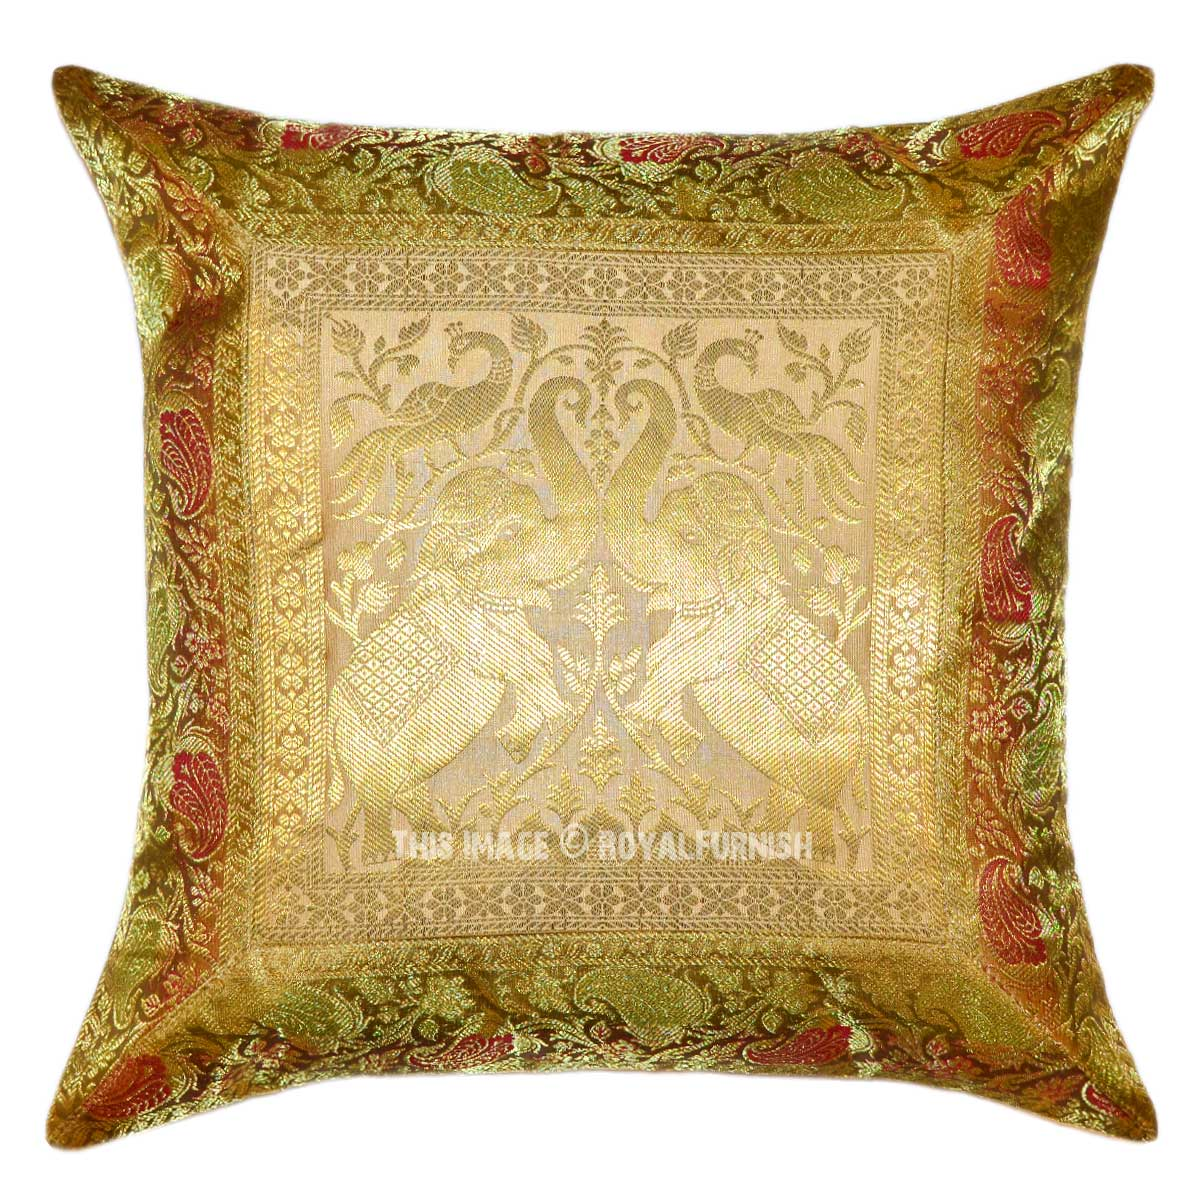 Gold Two Elephants and Peacocks Featuring Silk Throw Pillow Cover 16X16 - RoyalFurnish.com